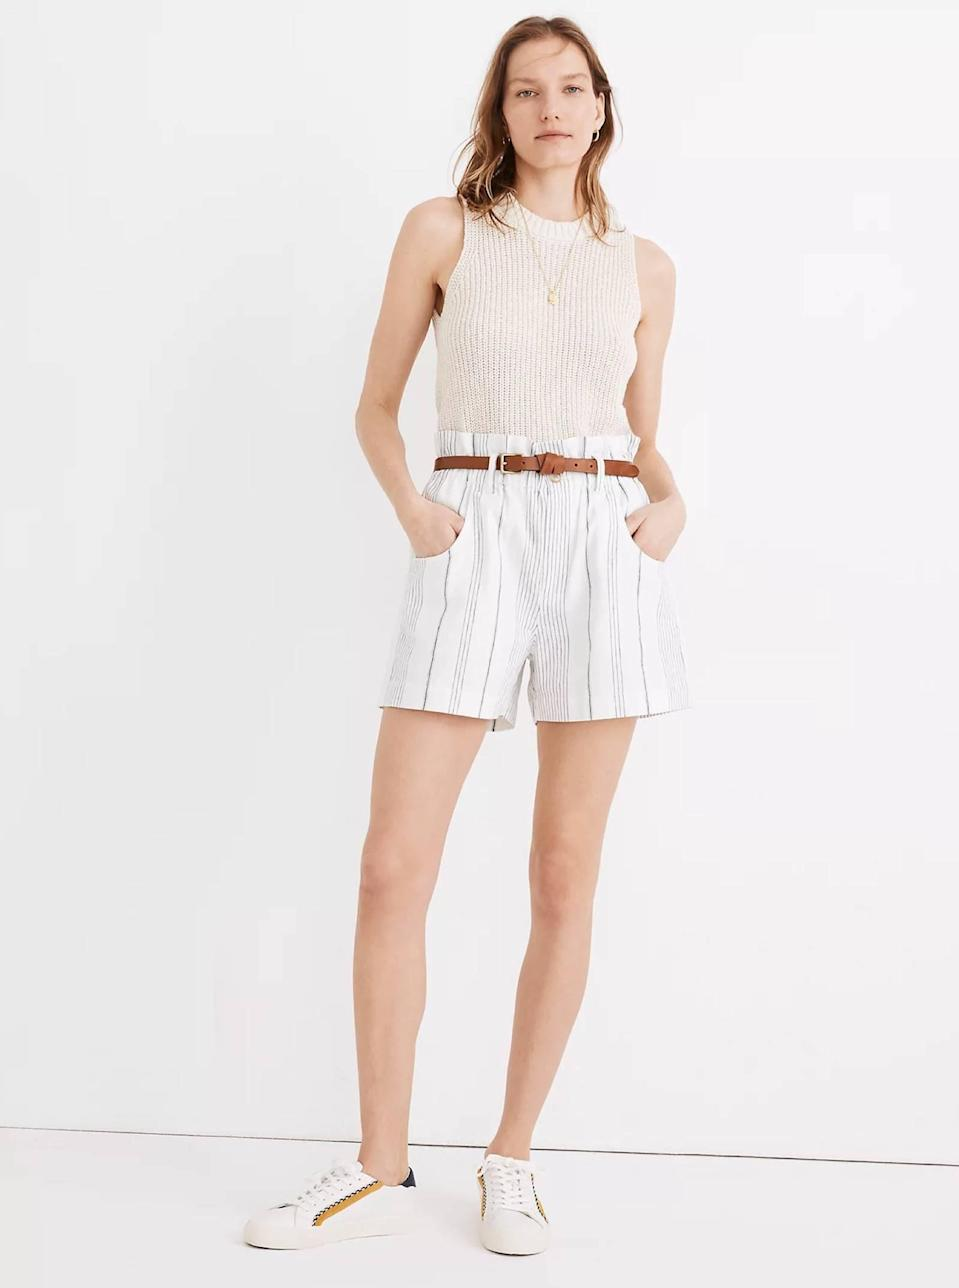 """<a href=""""https://www.glamour.com/about/denim-shorts?mbid=synd_yahoo_rss"""" rel=""""nofollow noopener"""" target=""""_blank"""" data-ylk=""""slk:Denim shorts"""" class=""""link rapid-noclick-resp"""">Denim shorts</a> are a summer must, but so are…nondenim shorts. This striped pair is fun, sophisticated, and comfy all at the same time. $69.5, Madewell. <a href=""""https://www.madewell.com/linen-cotton-pull-on-paperbag-shorts-in-stripe-MD173.html?"""" rel=""""nofollow noopener"""" target=""""_blank"""" data-ylk=""""slk:Get it now!"""" class=""""link rapid-noclick-resp"""">Get it now!</a>"""